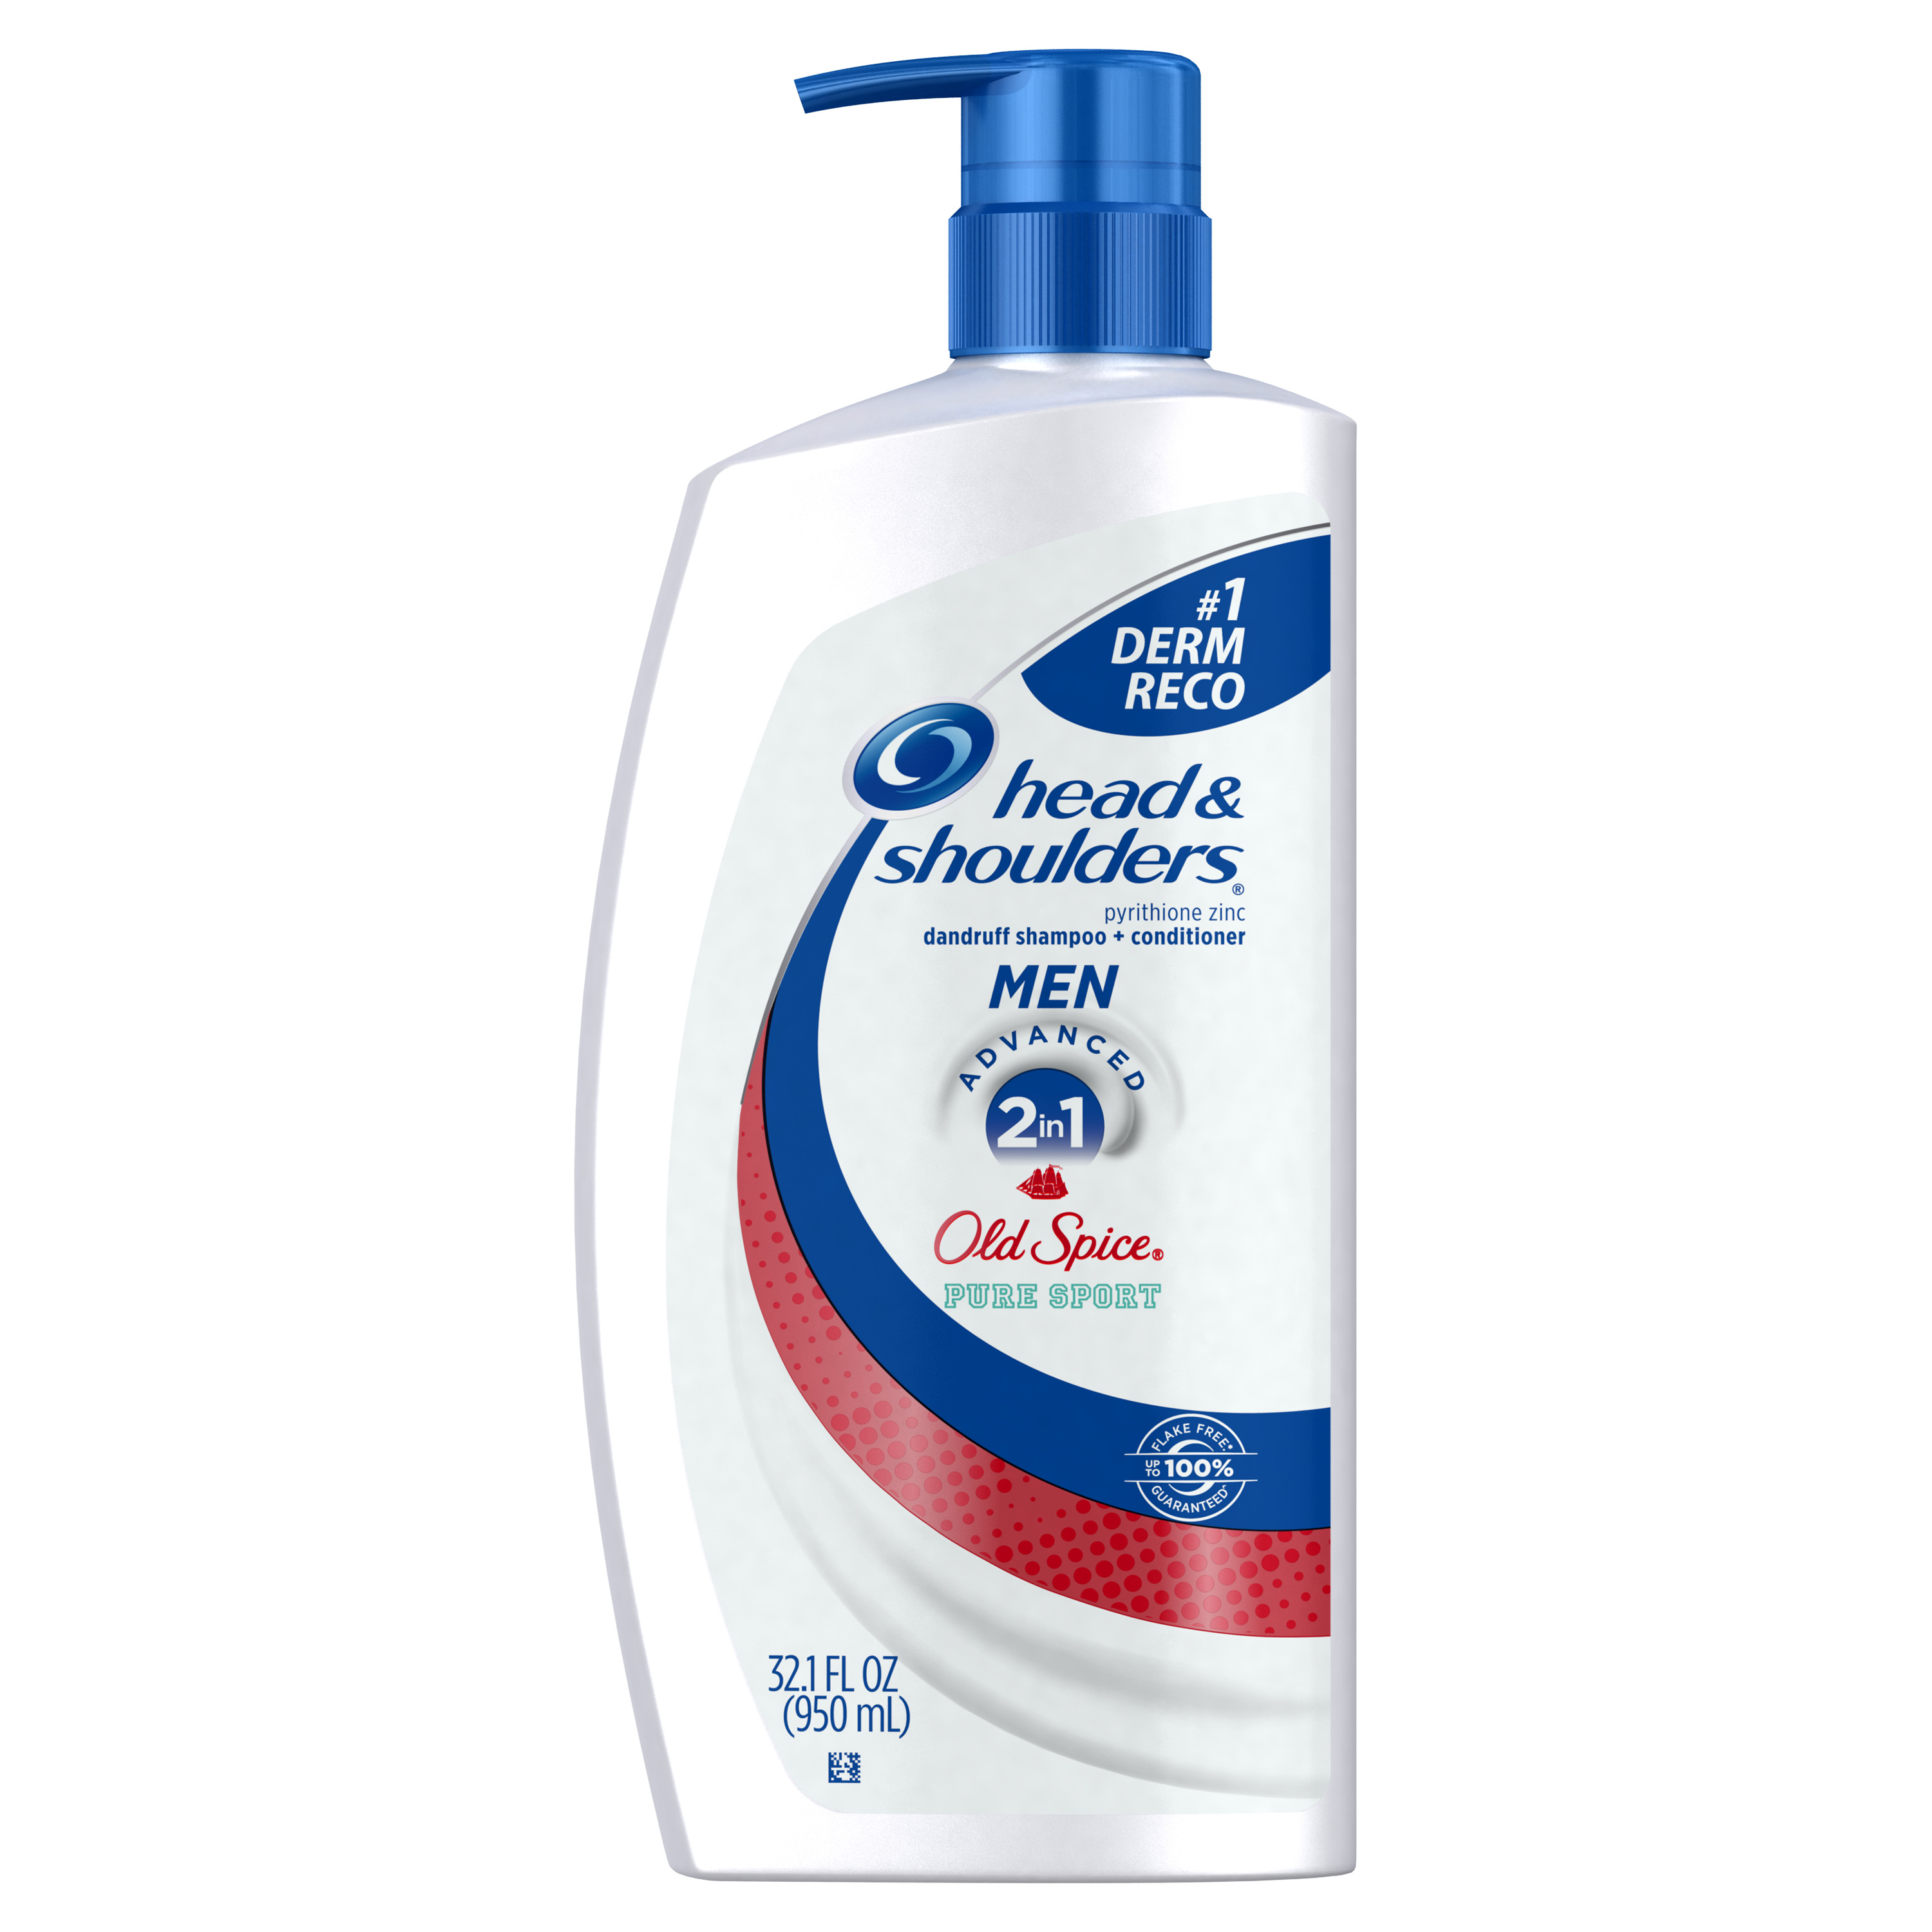 Head and Shoulders Old Spice Pure Sport 2-in-1 Anti-Dandruff Shampoo + Conditioner 32.1 fl oz